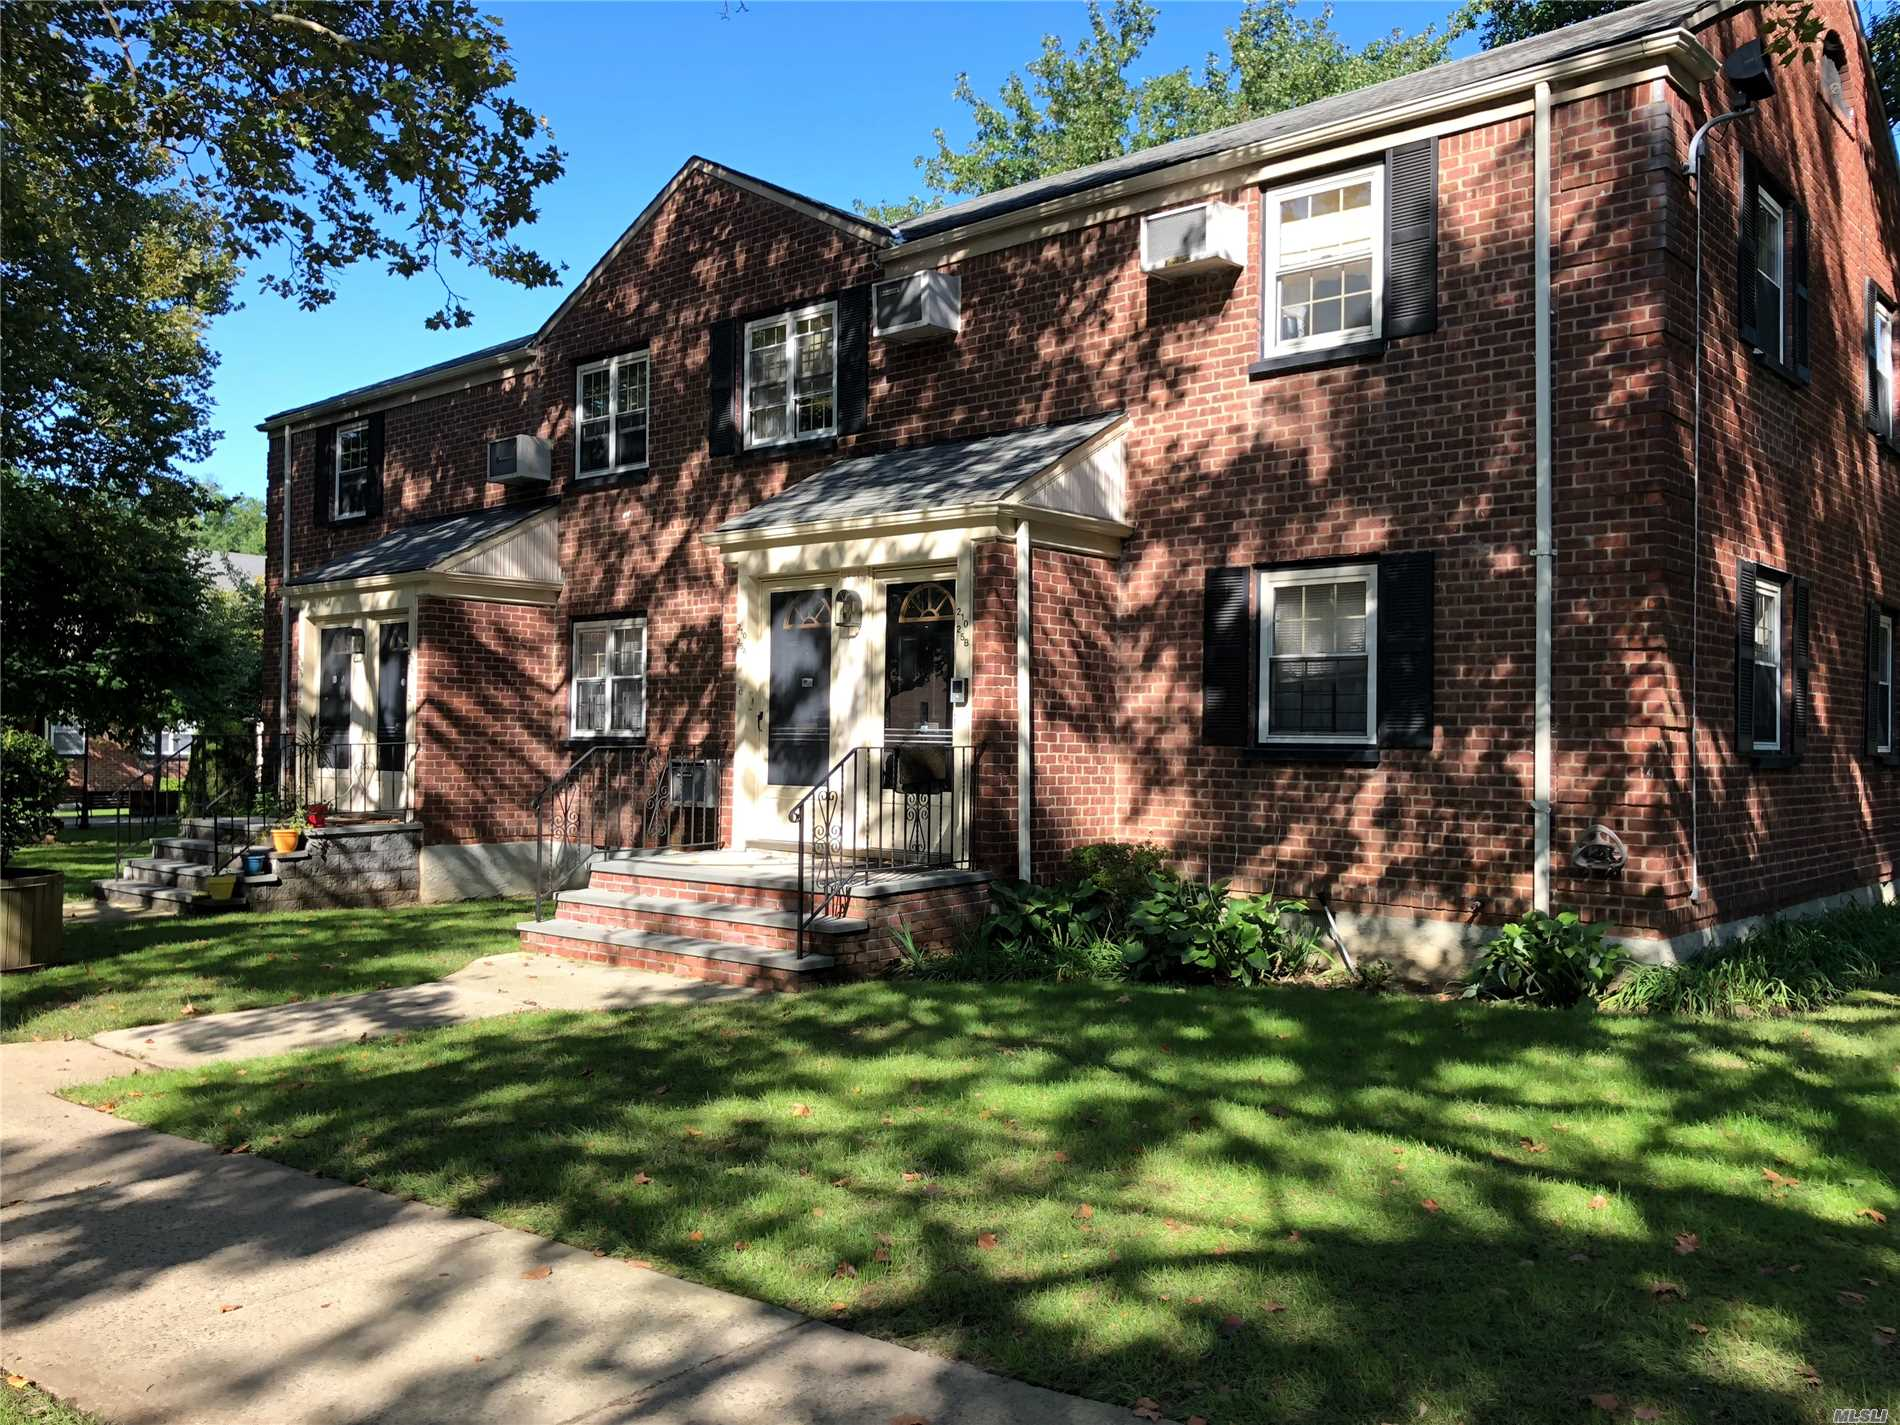 Newly Listed In Hollis Court! Features Well Kept Sunny Kitchen + Spacious Dining Room, Hardwood Floors, 2 Large Bedrooms & 1 Full Bathroom. Situated In Quaint Courtyard, Private Entrance. Near Schools, Shops, & Transportation. Qm5 & Qm8